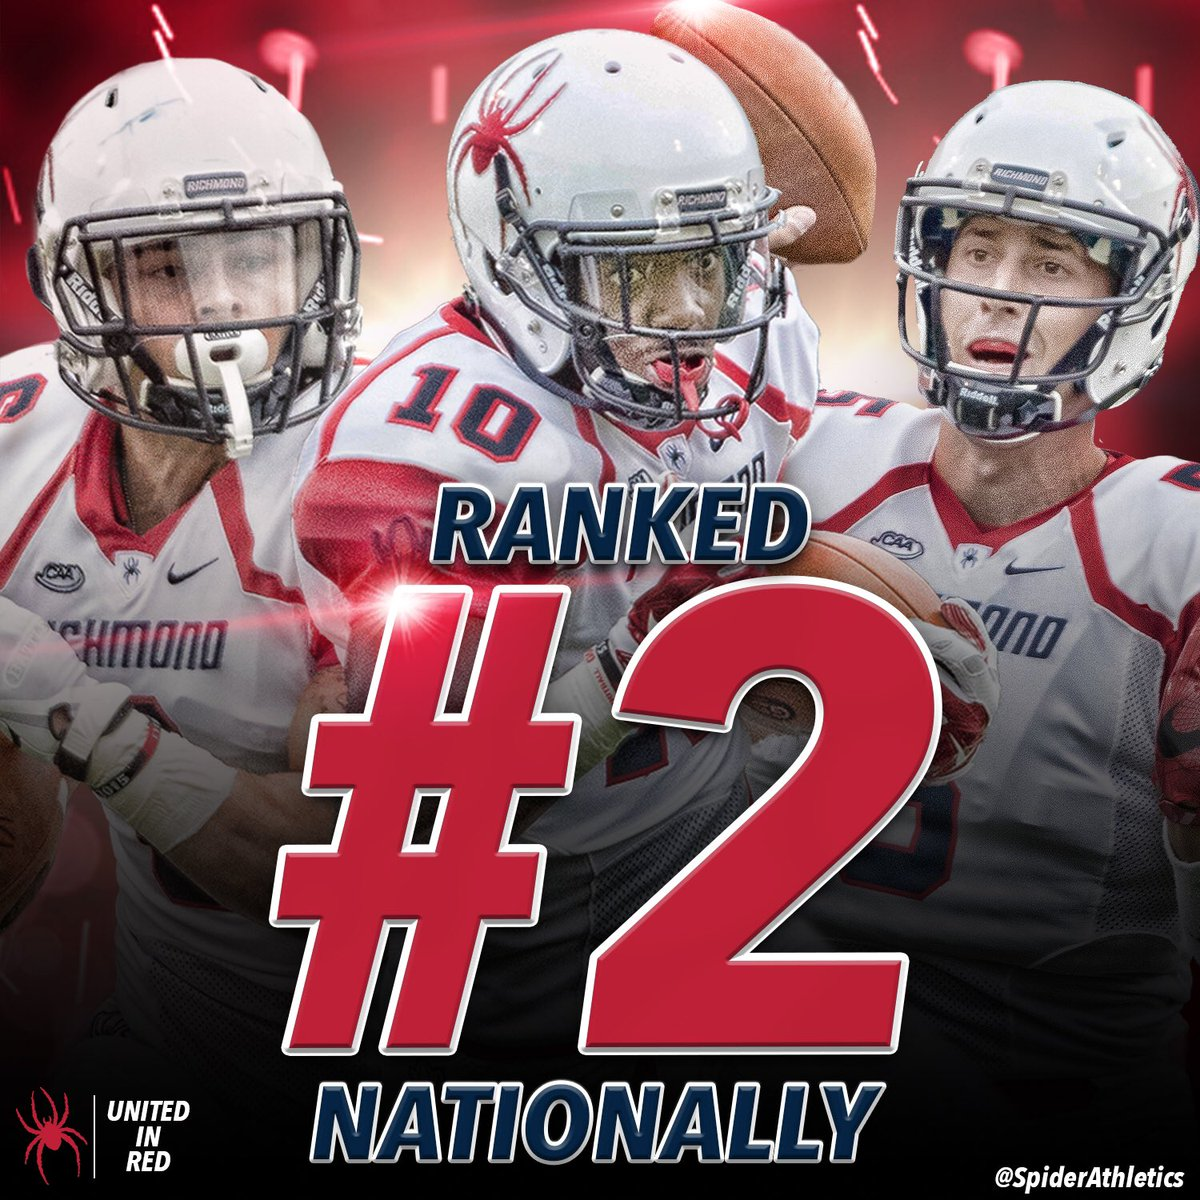 .@SpiderFootball moves up to #2 in the latest STATS FCS poll! #OneRichmond https://t.co/HLvlQXGiZf